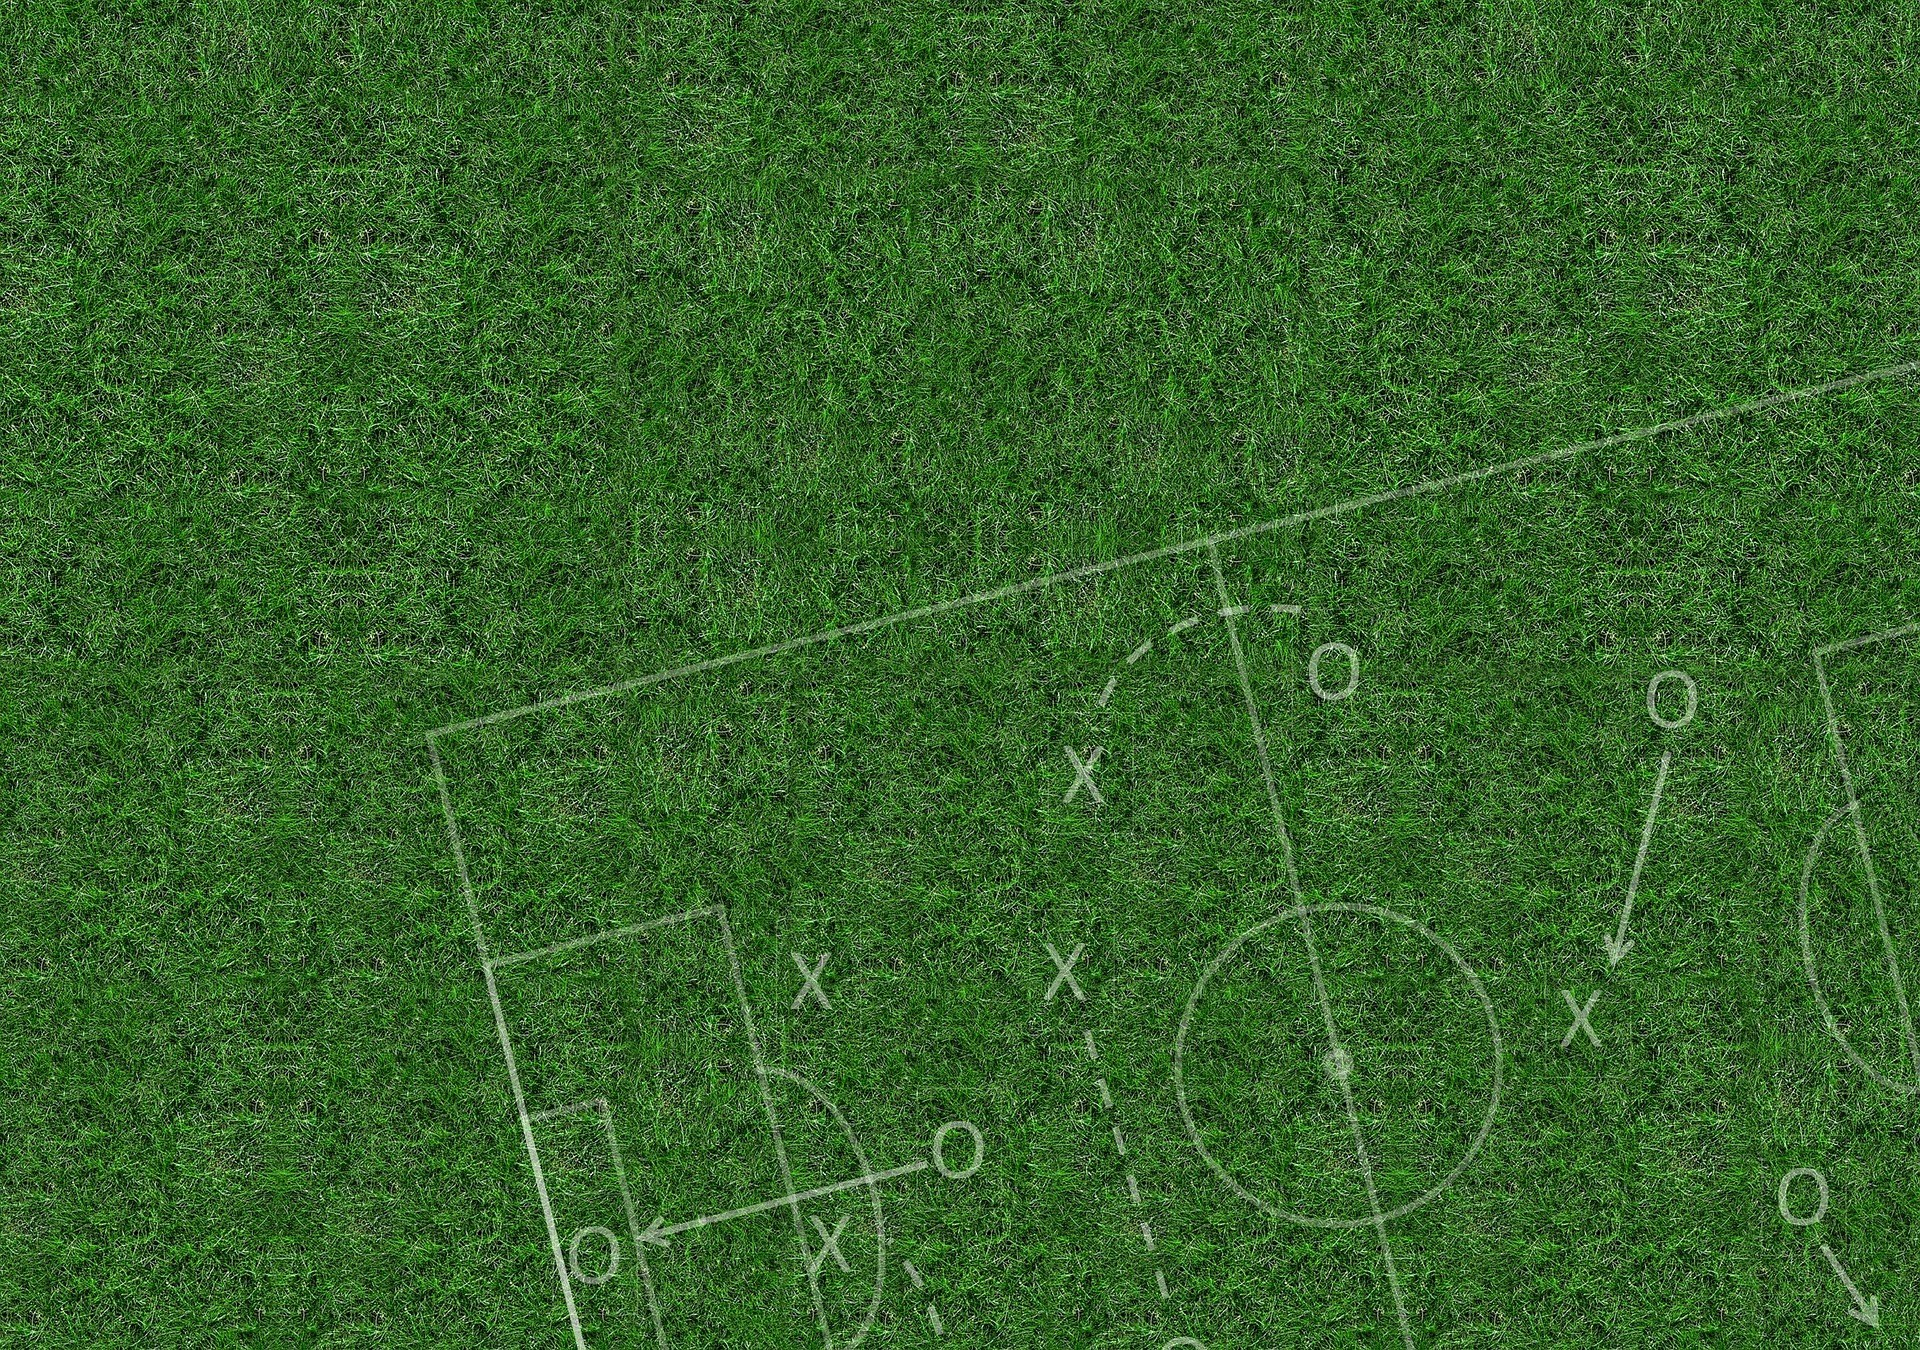 Public meeting in North Norfolk to consider future playing-pitches need